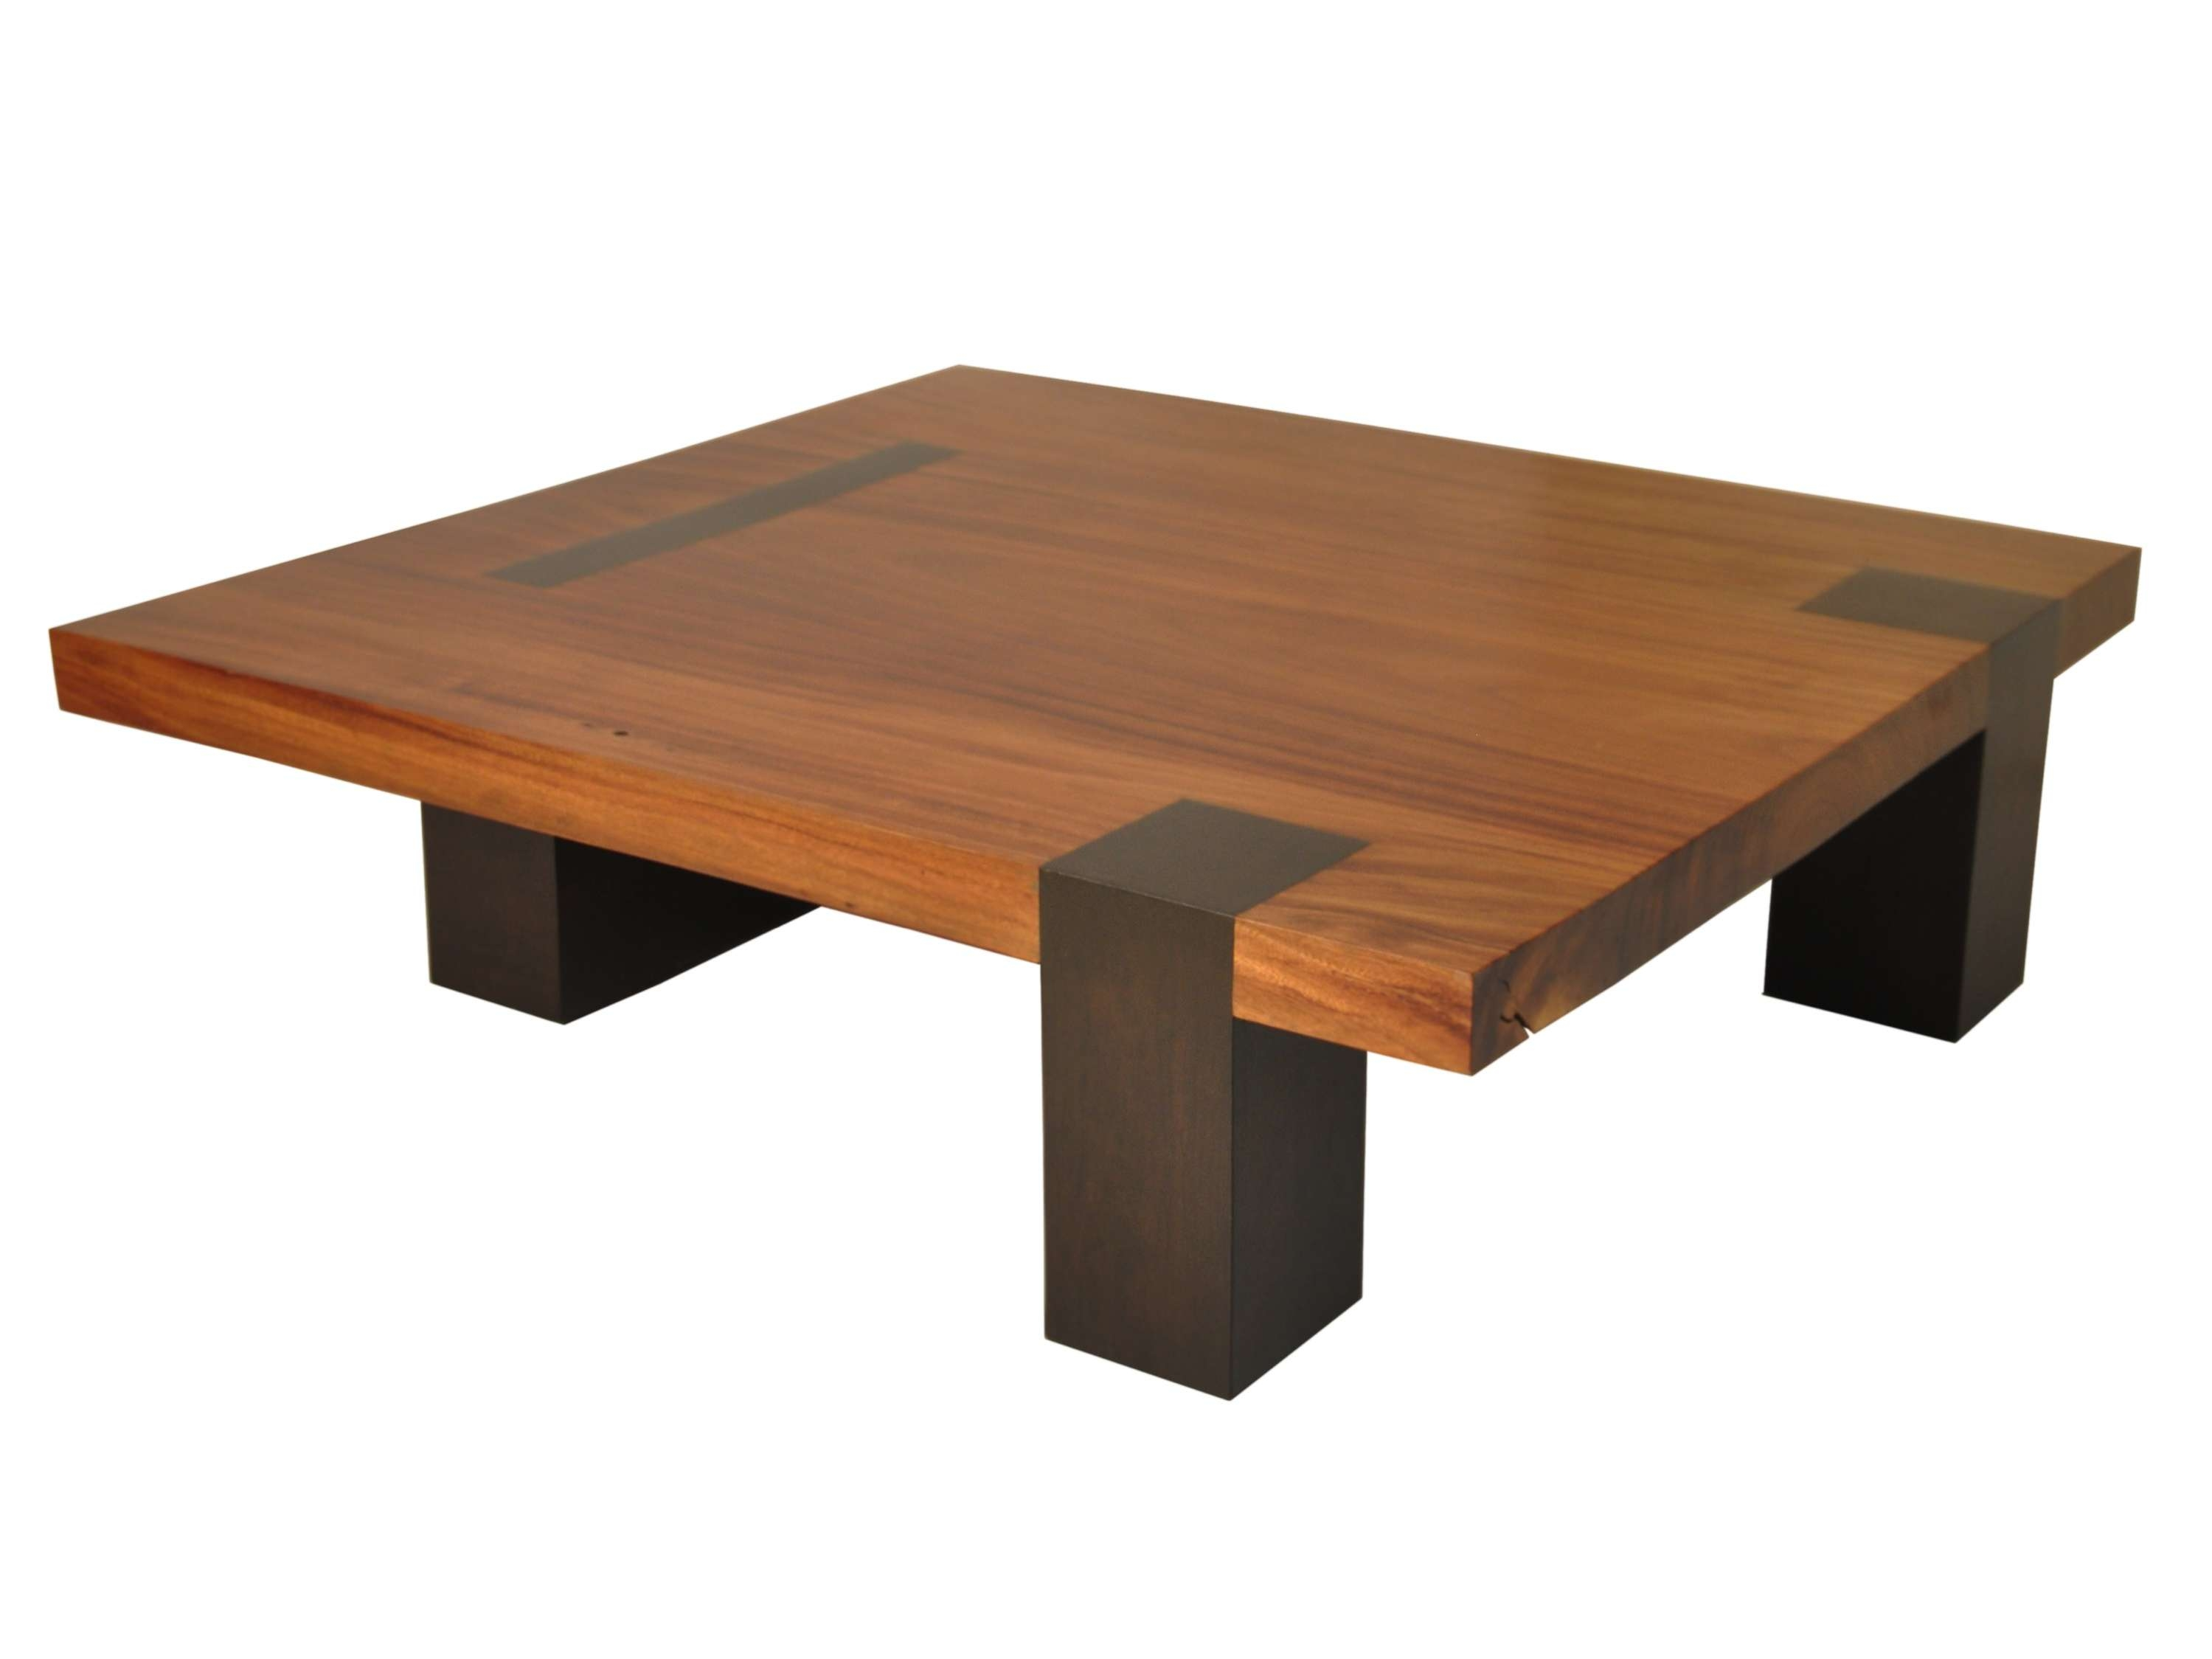 Coffee Tables Ideas: Best Wood Square Coffee Table With Storage With Regard To Famous Large Square Coffee Table With Storage (View 18 of 20)